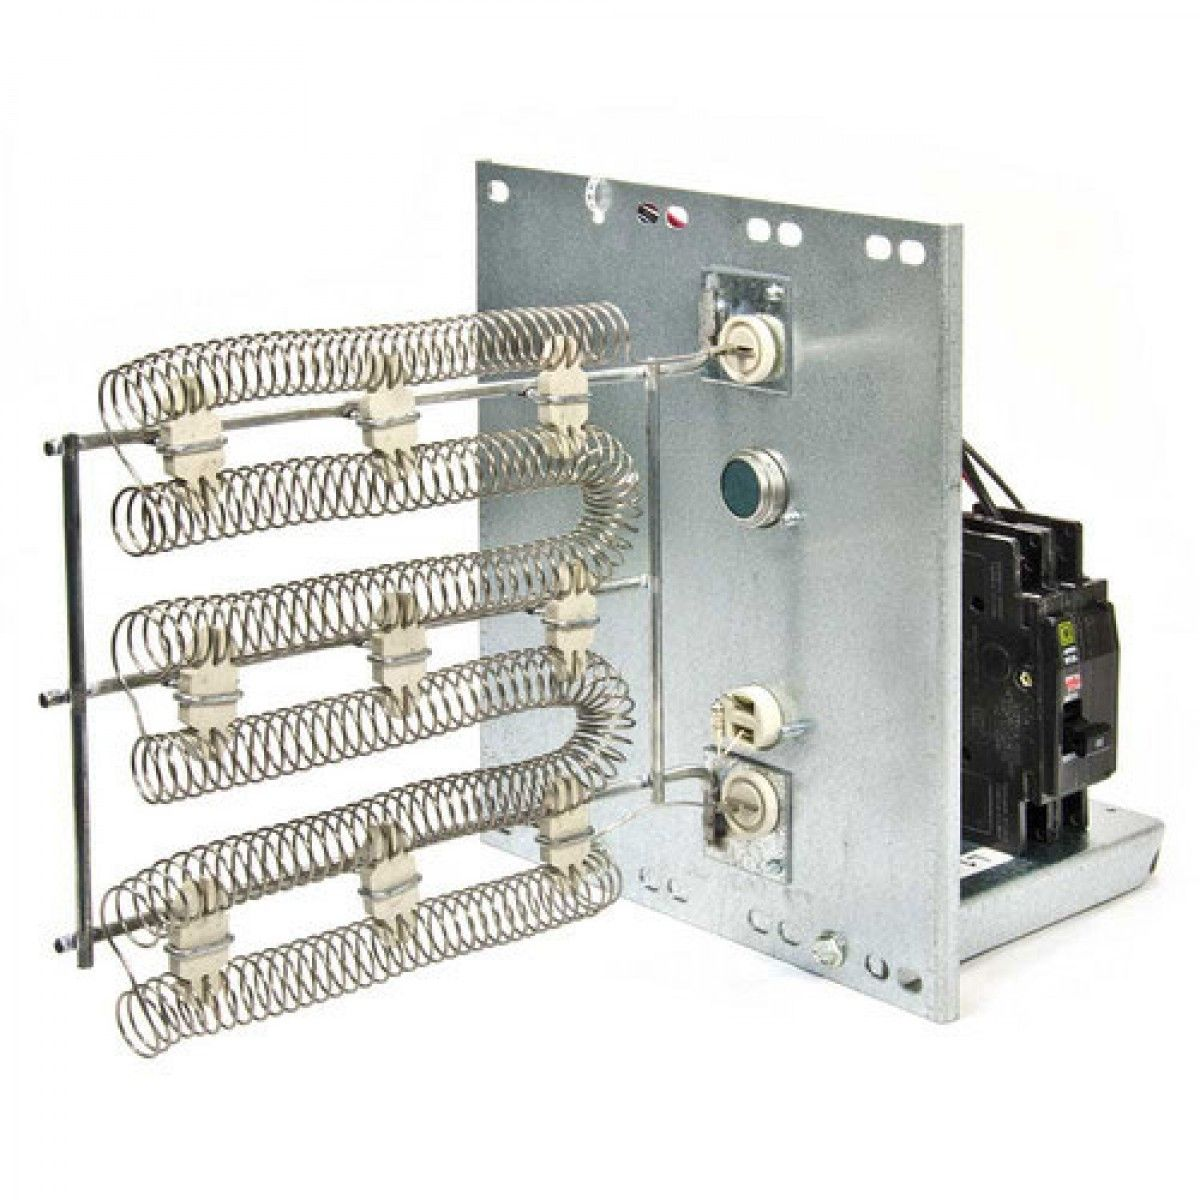 15 kW Goodman HKP-15 Electric Heat Kits for Packaged Electric Units ...